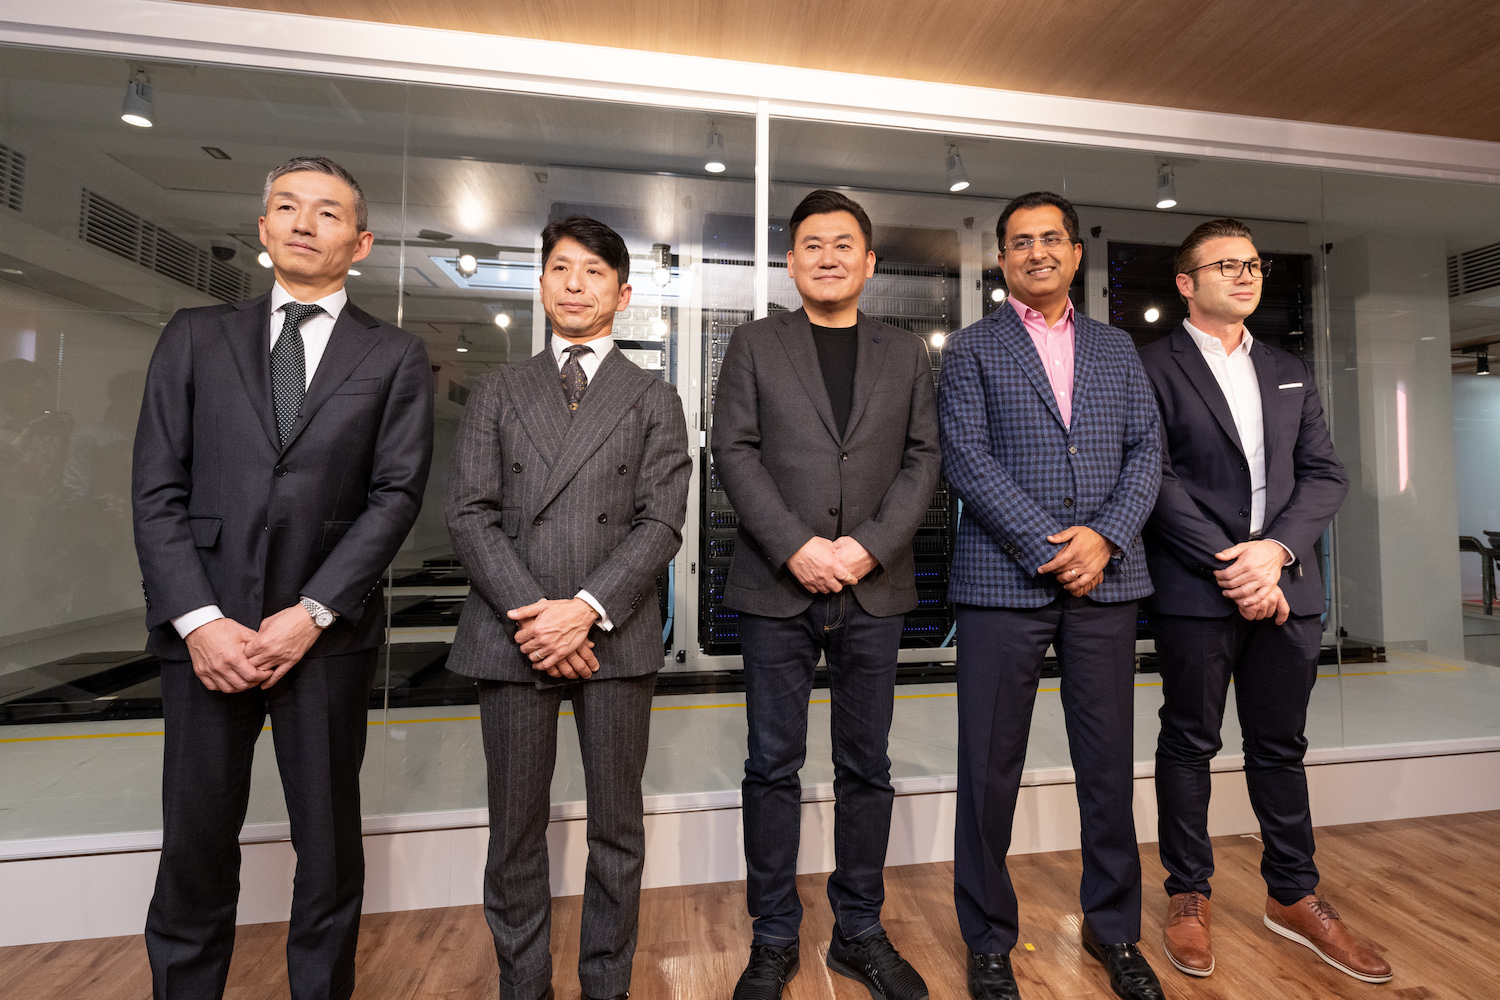 The Rakuten Cloud Innovation Laboratory aims to foster innovation across mobile network, IT digital architecture, 5G, cloud and enterprise applications.